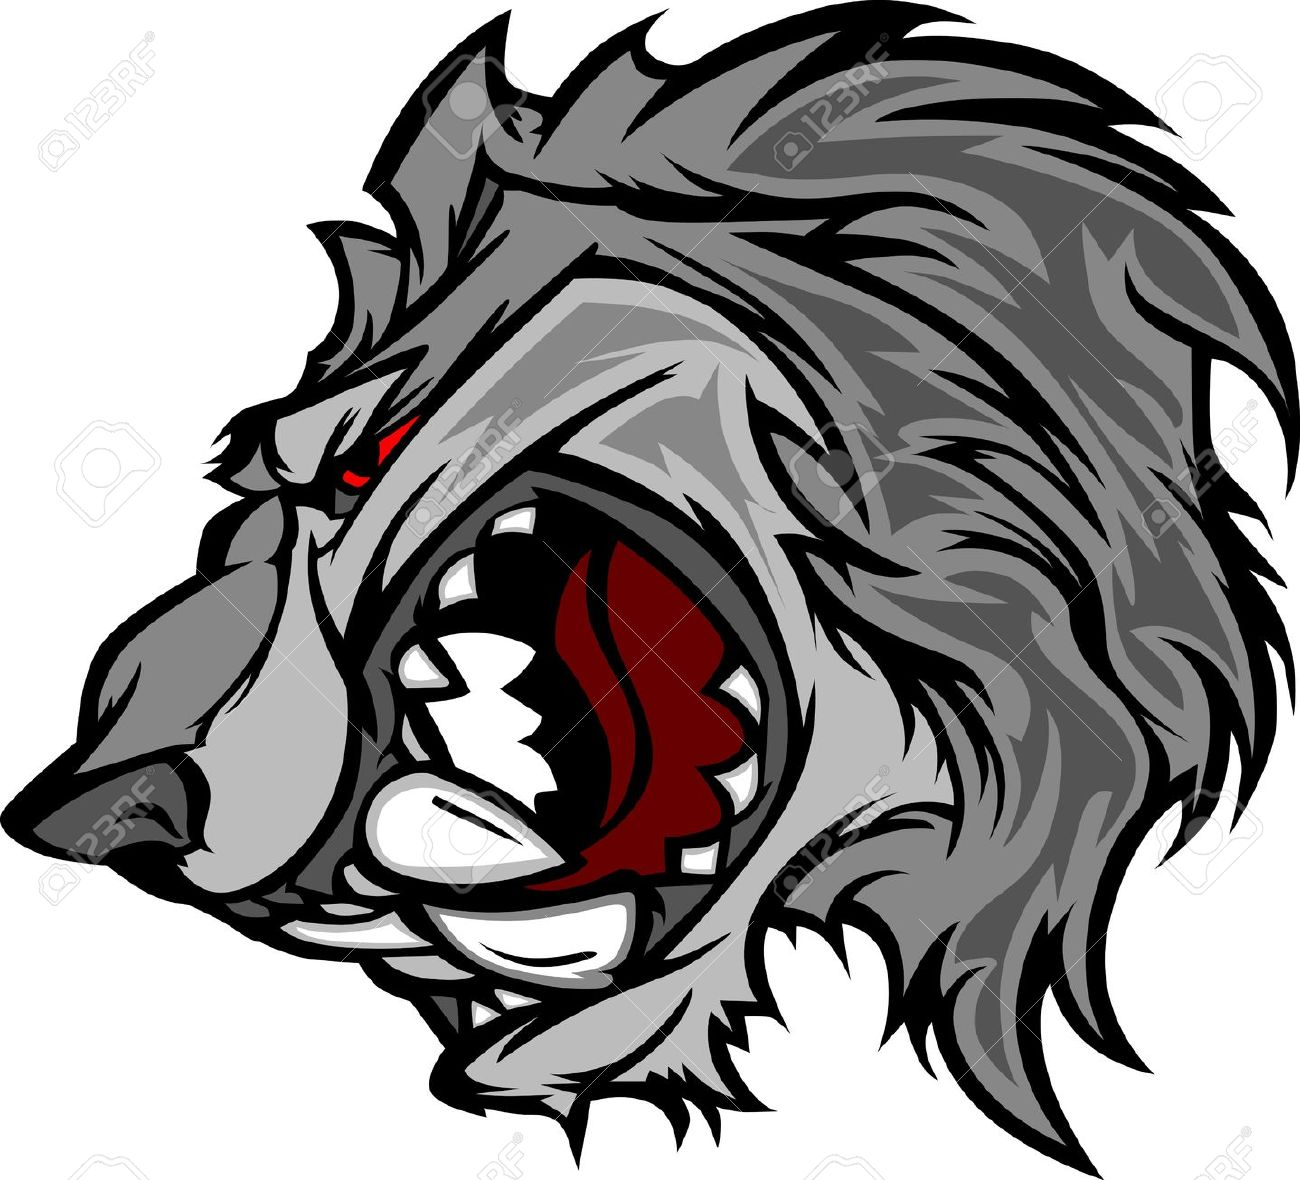 Snarl clipart #2, Download drawings